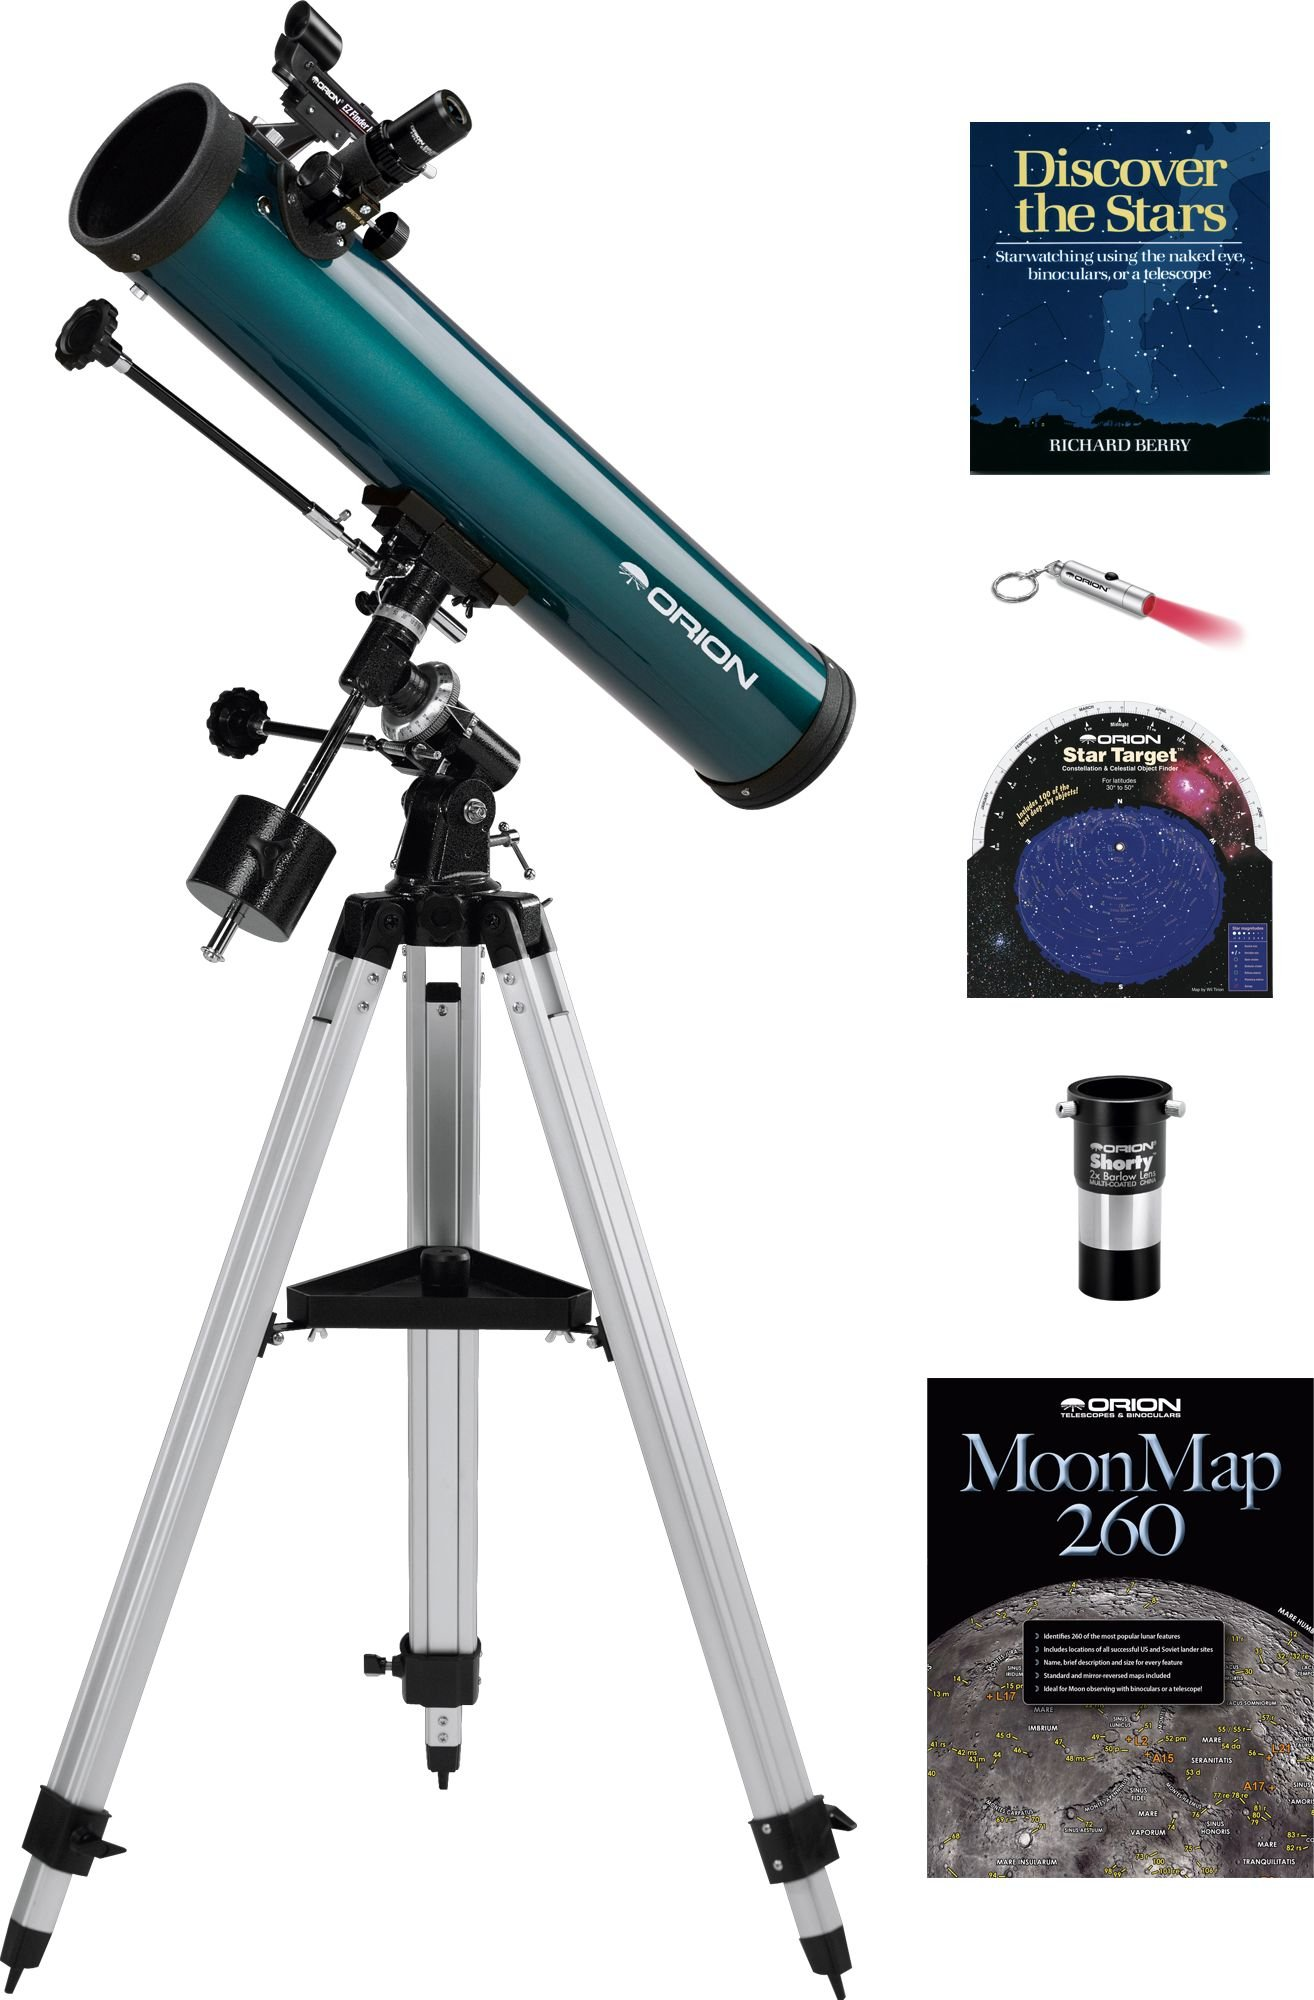 astronomy kits for adults - HD1314×2000